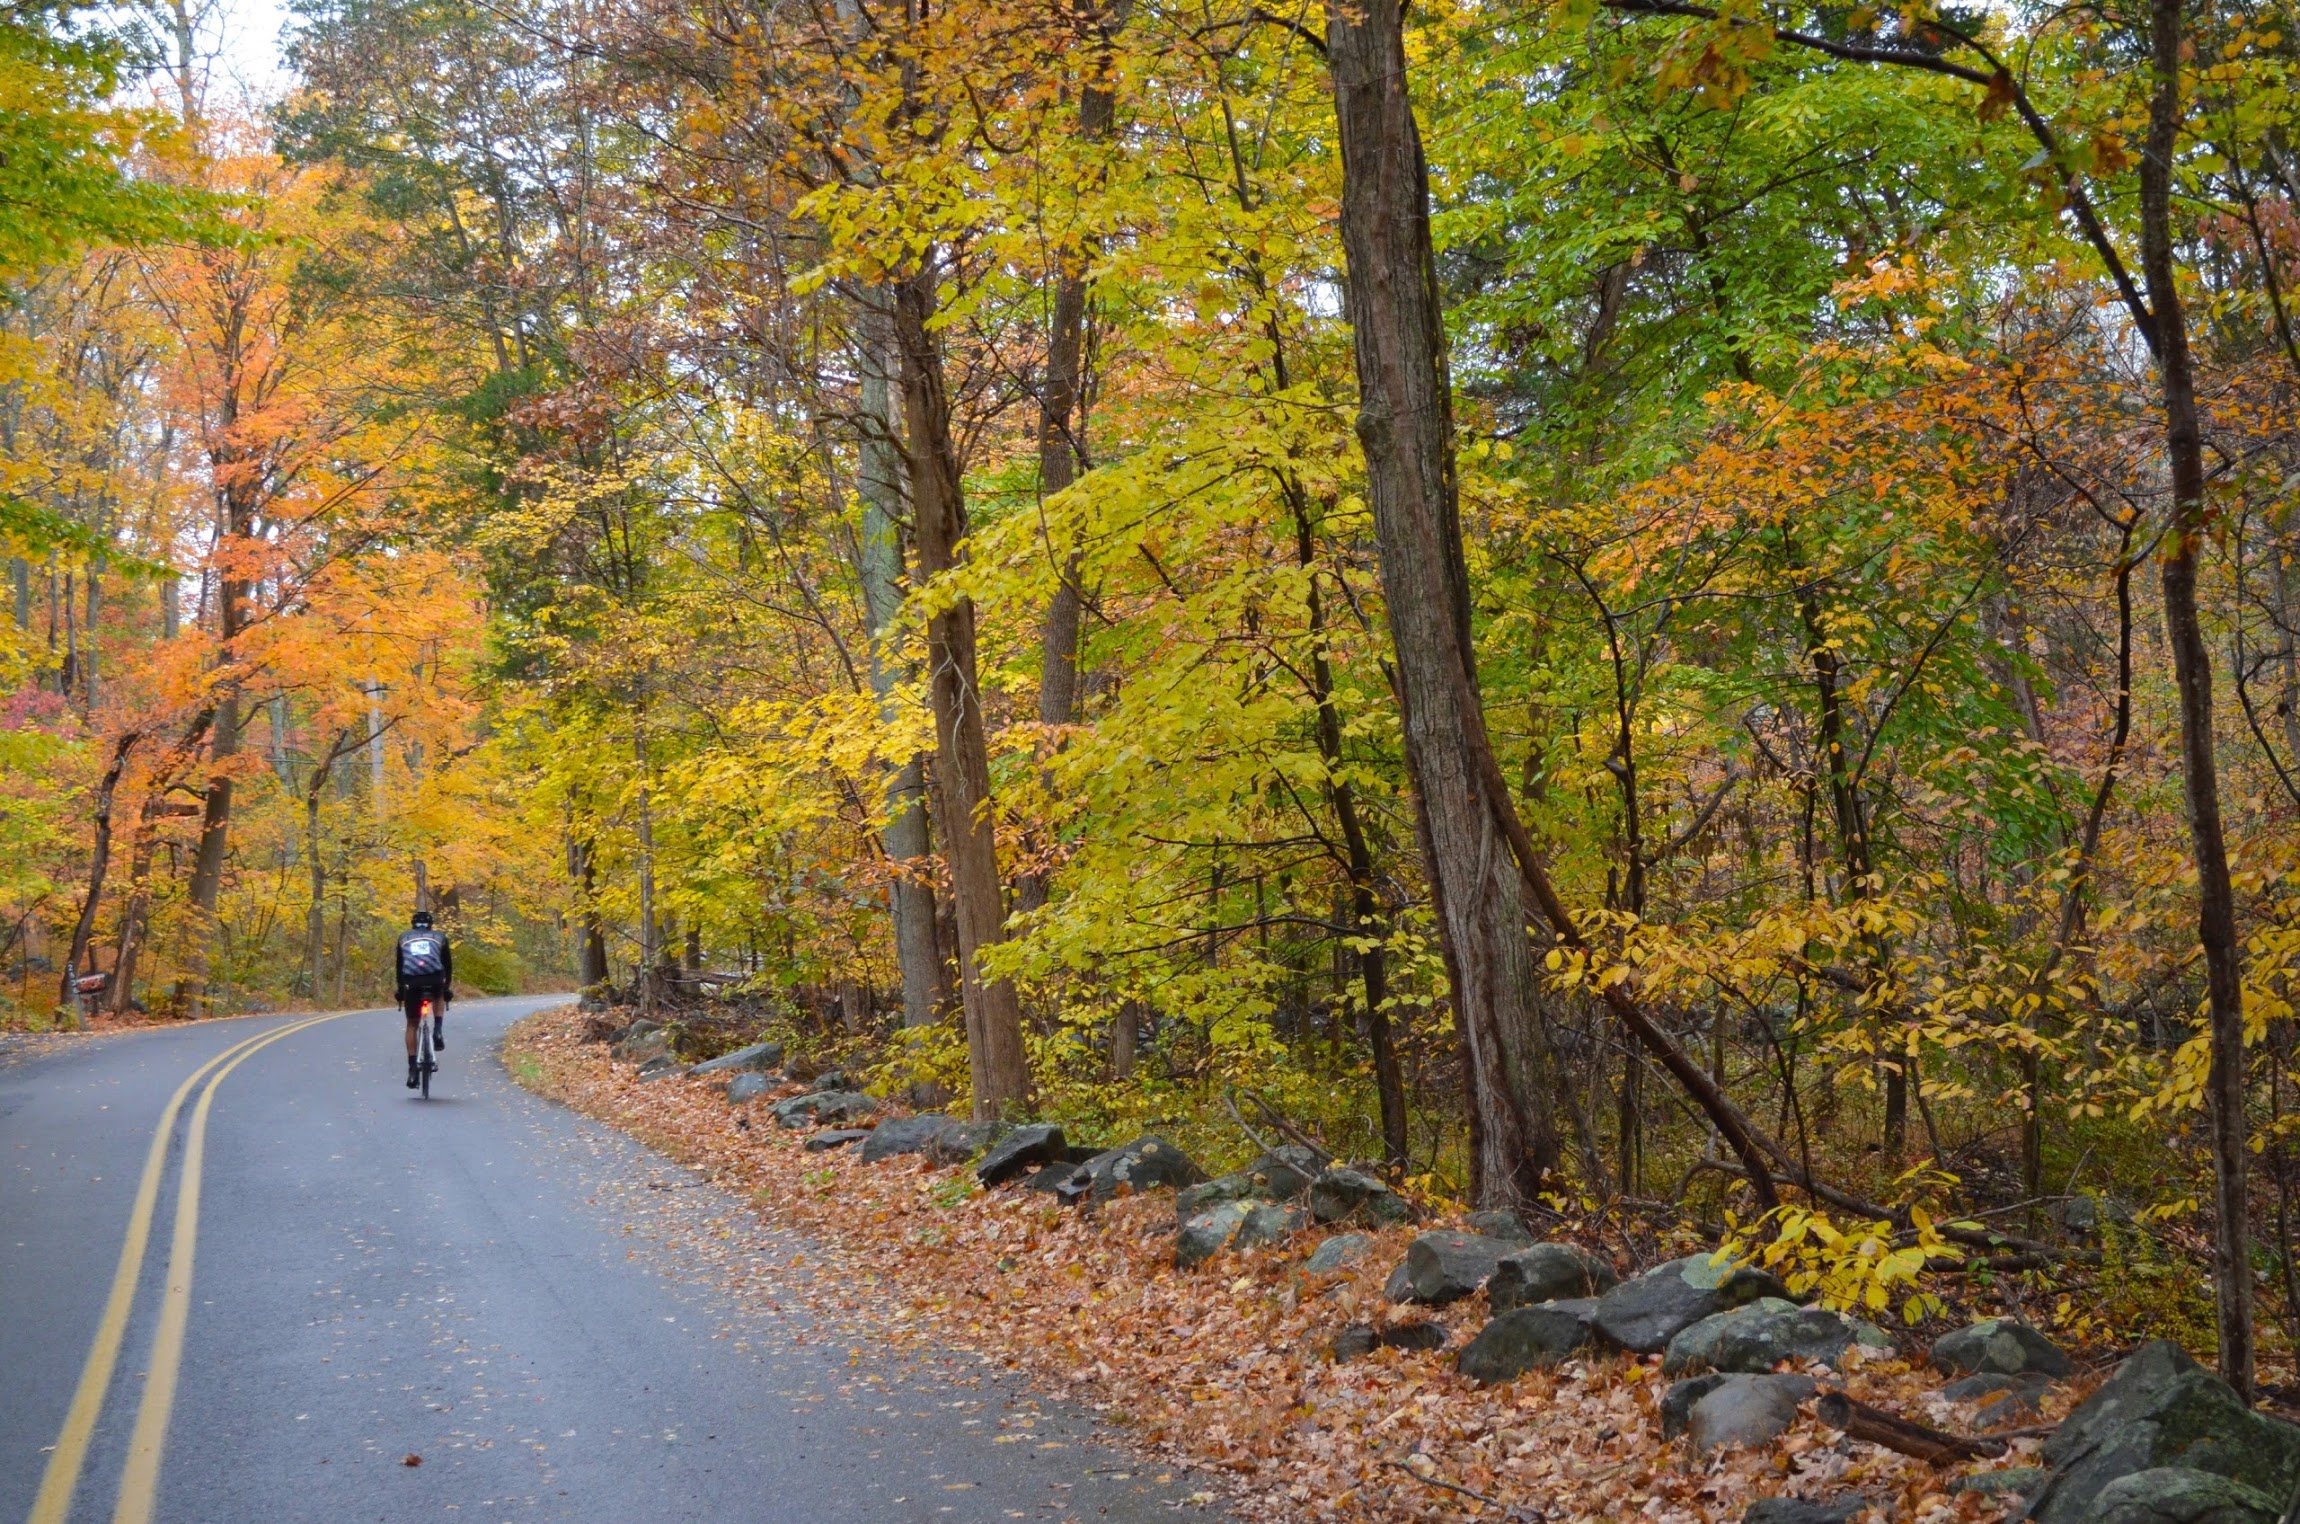 An example of the fall colors during last year's Oktoberfest ride by Kermesse Sport. Photo credit Janine Carroll.